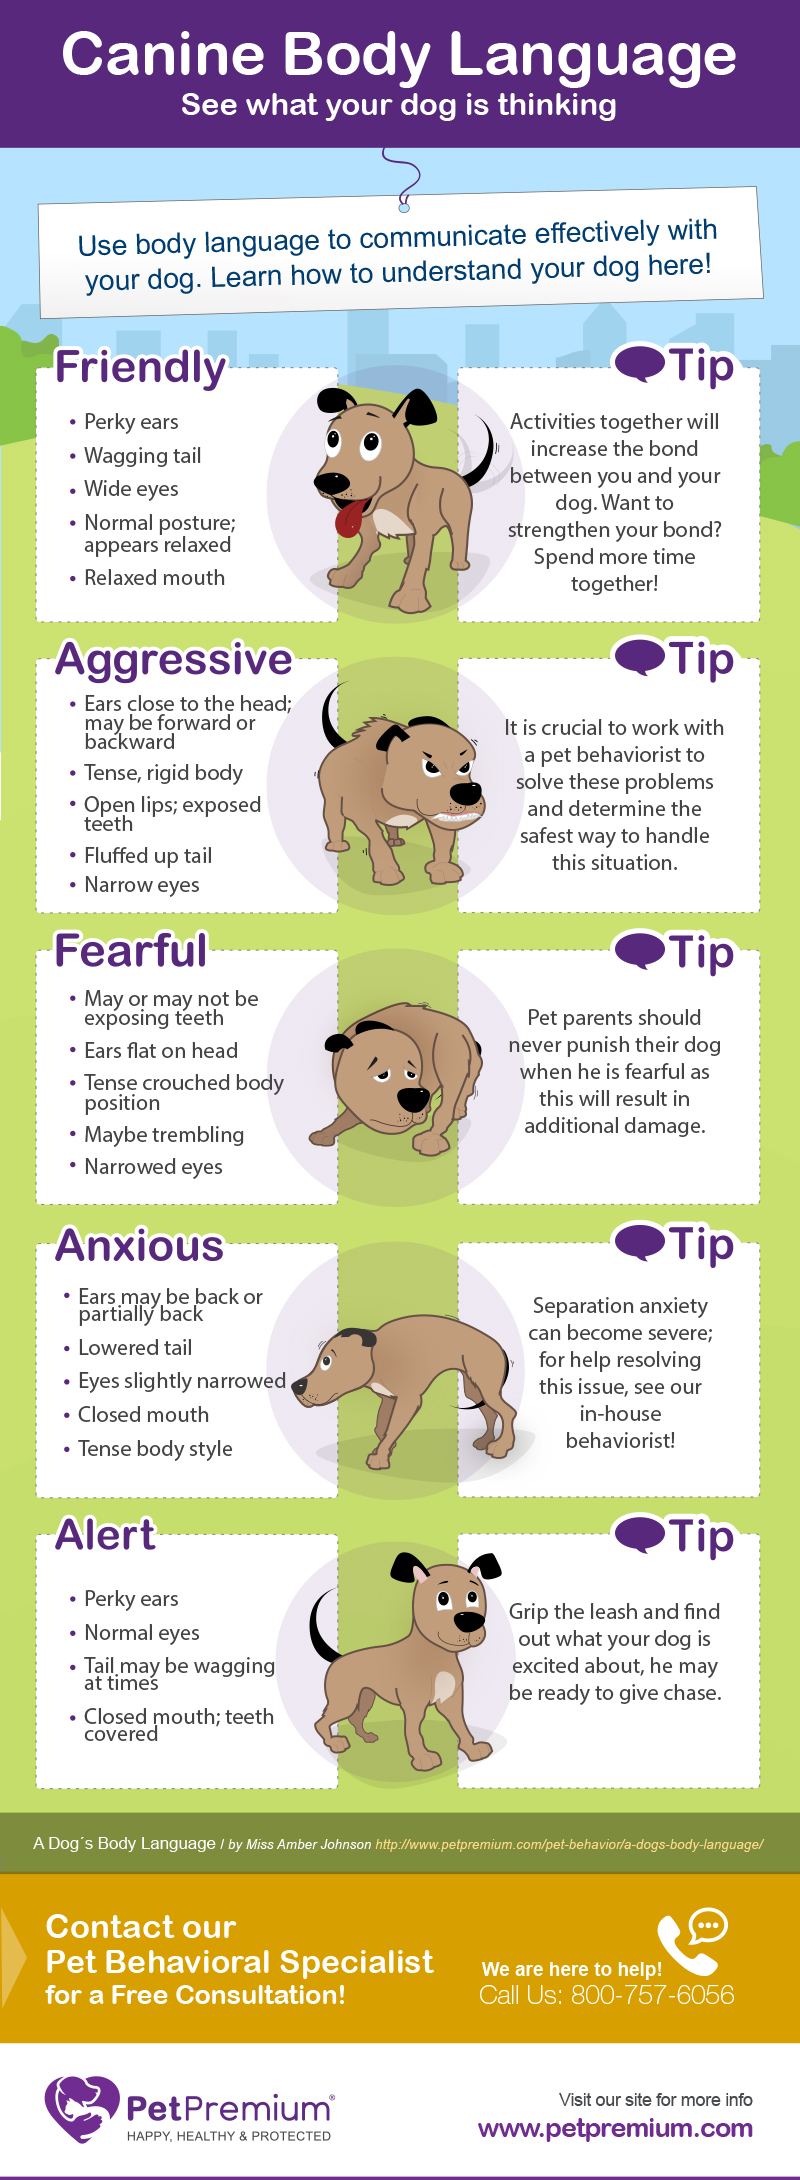 Canine Body Language - PetPremium